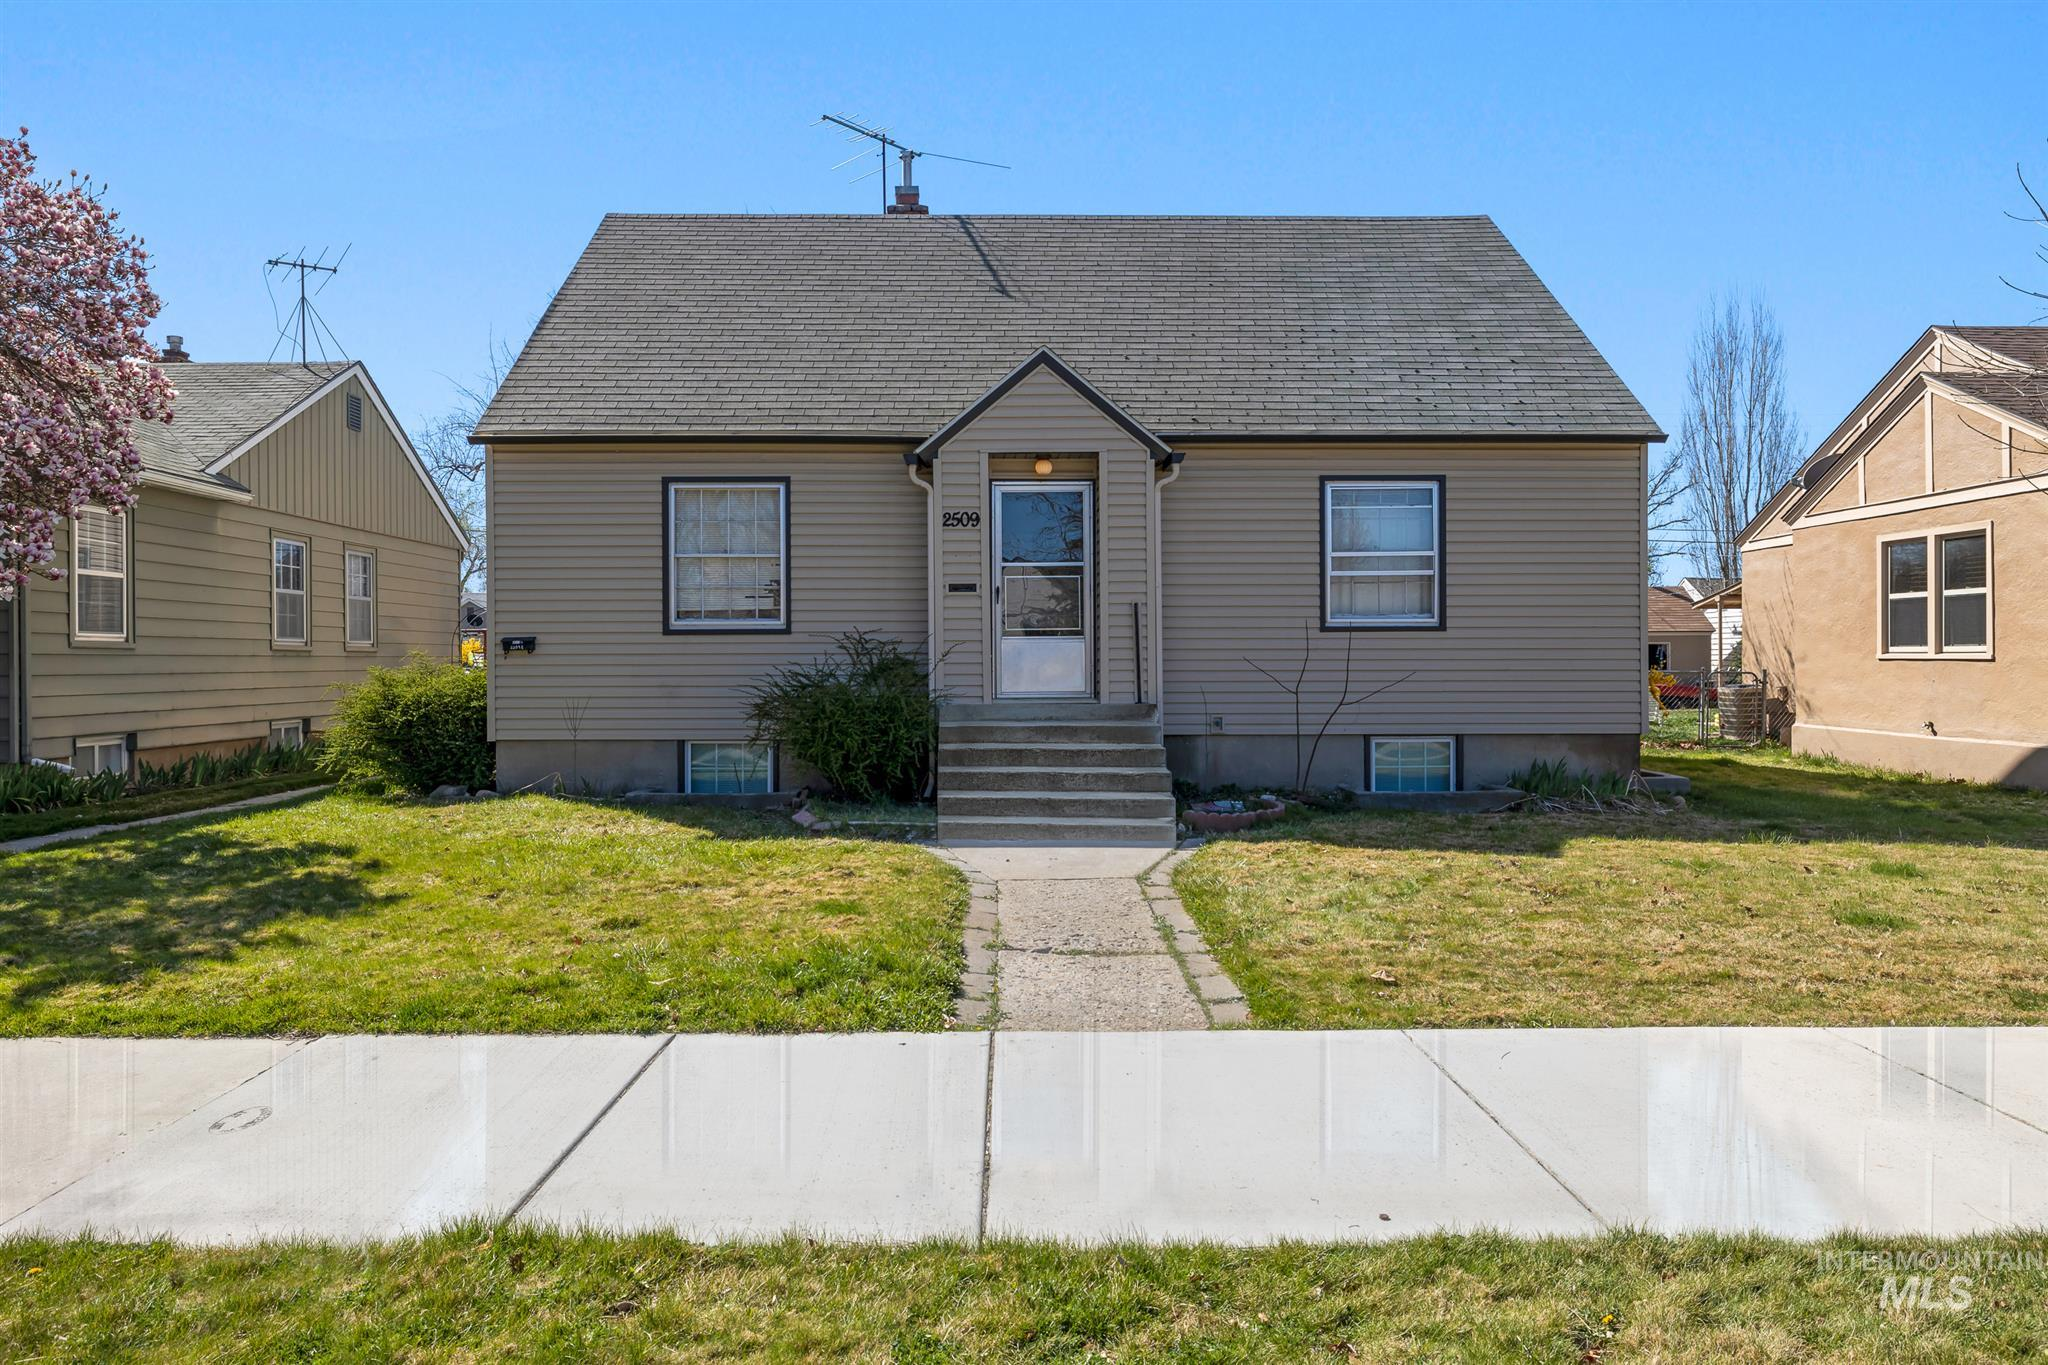 2509 W BANNOCK ST Property Photo - Boise, ID real estate listing